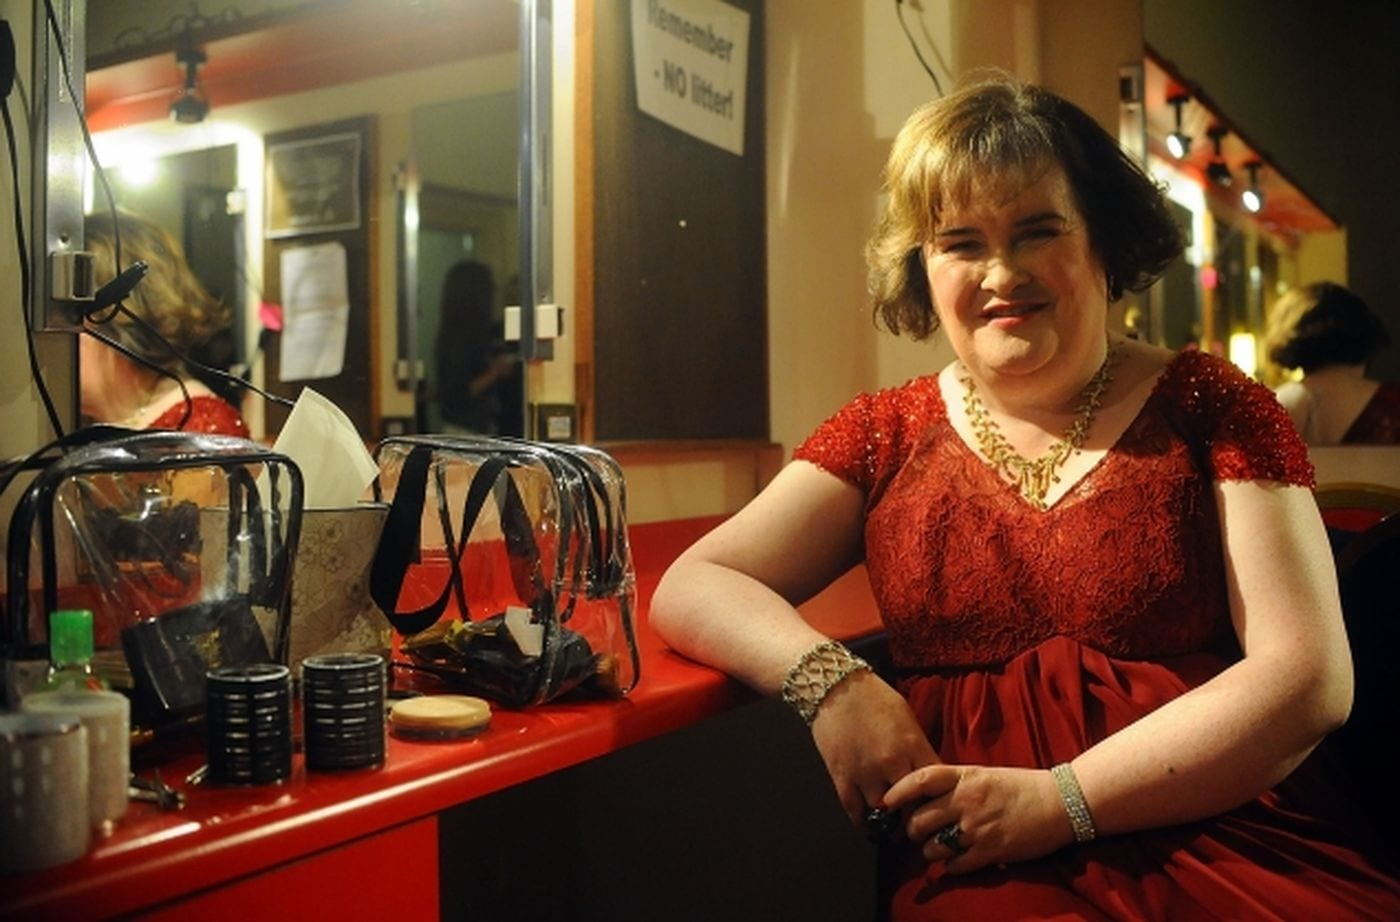 Career, Susan Boyle, celebrities with normal jobs